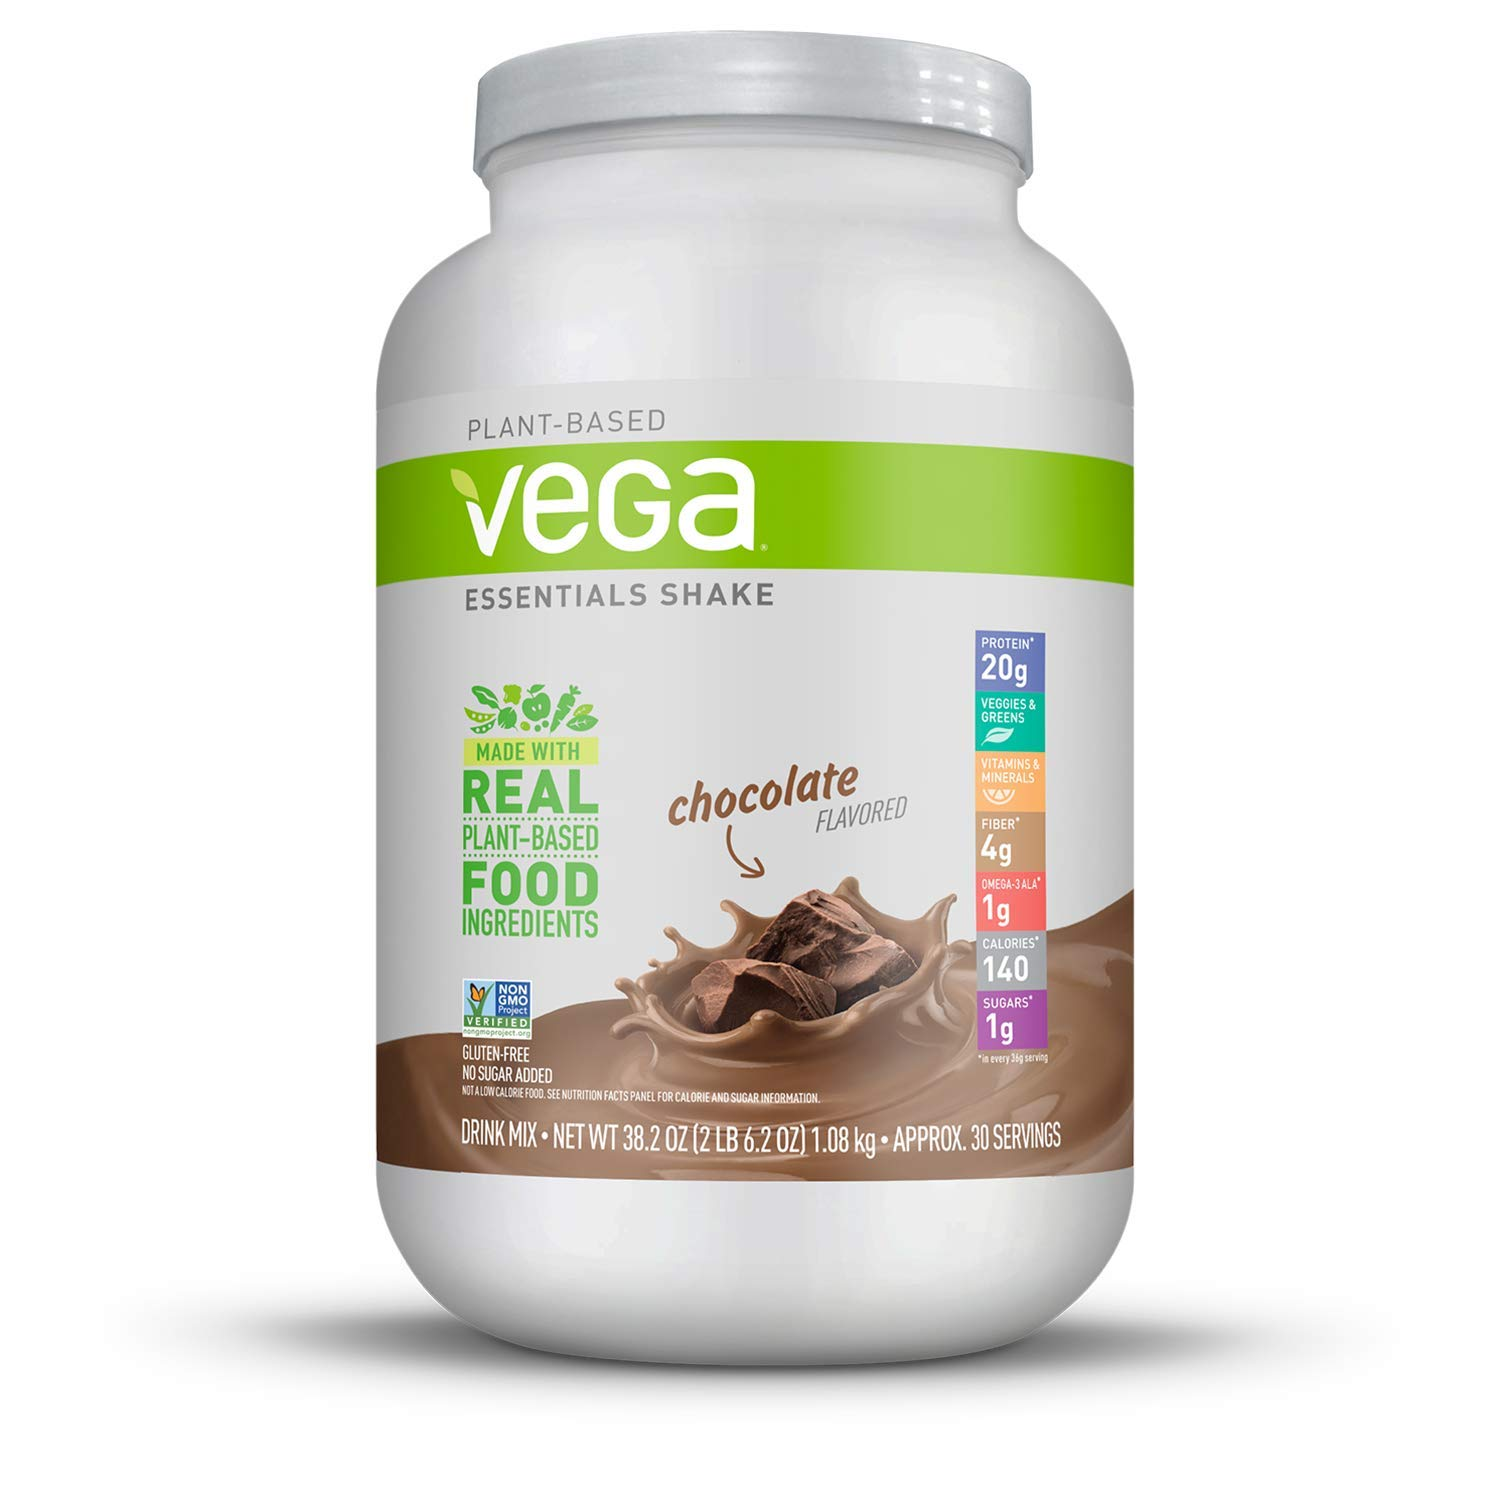 Vega Essentials Shake Chocolate(30 Servings, 38.1 oz) - Plant Based Vegan Protein Powder, Non Dairy, Gluten Free, Smooth and Creamy, Non GMO